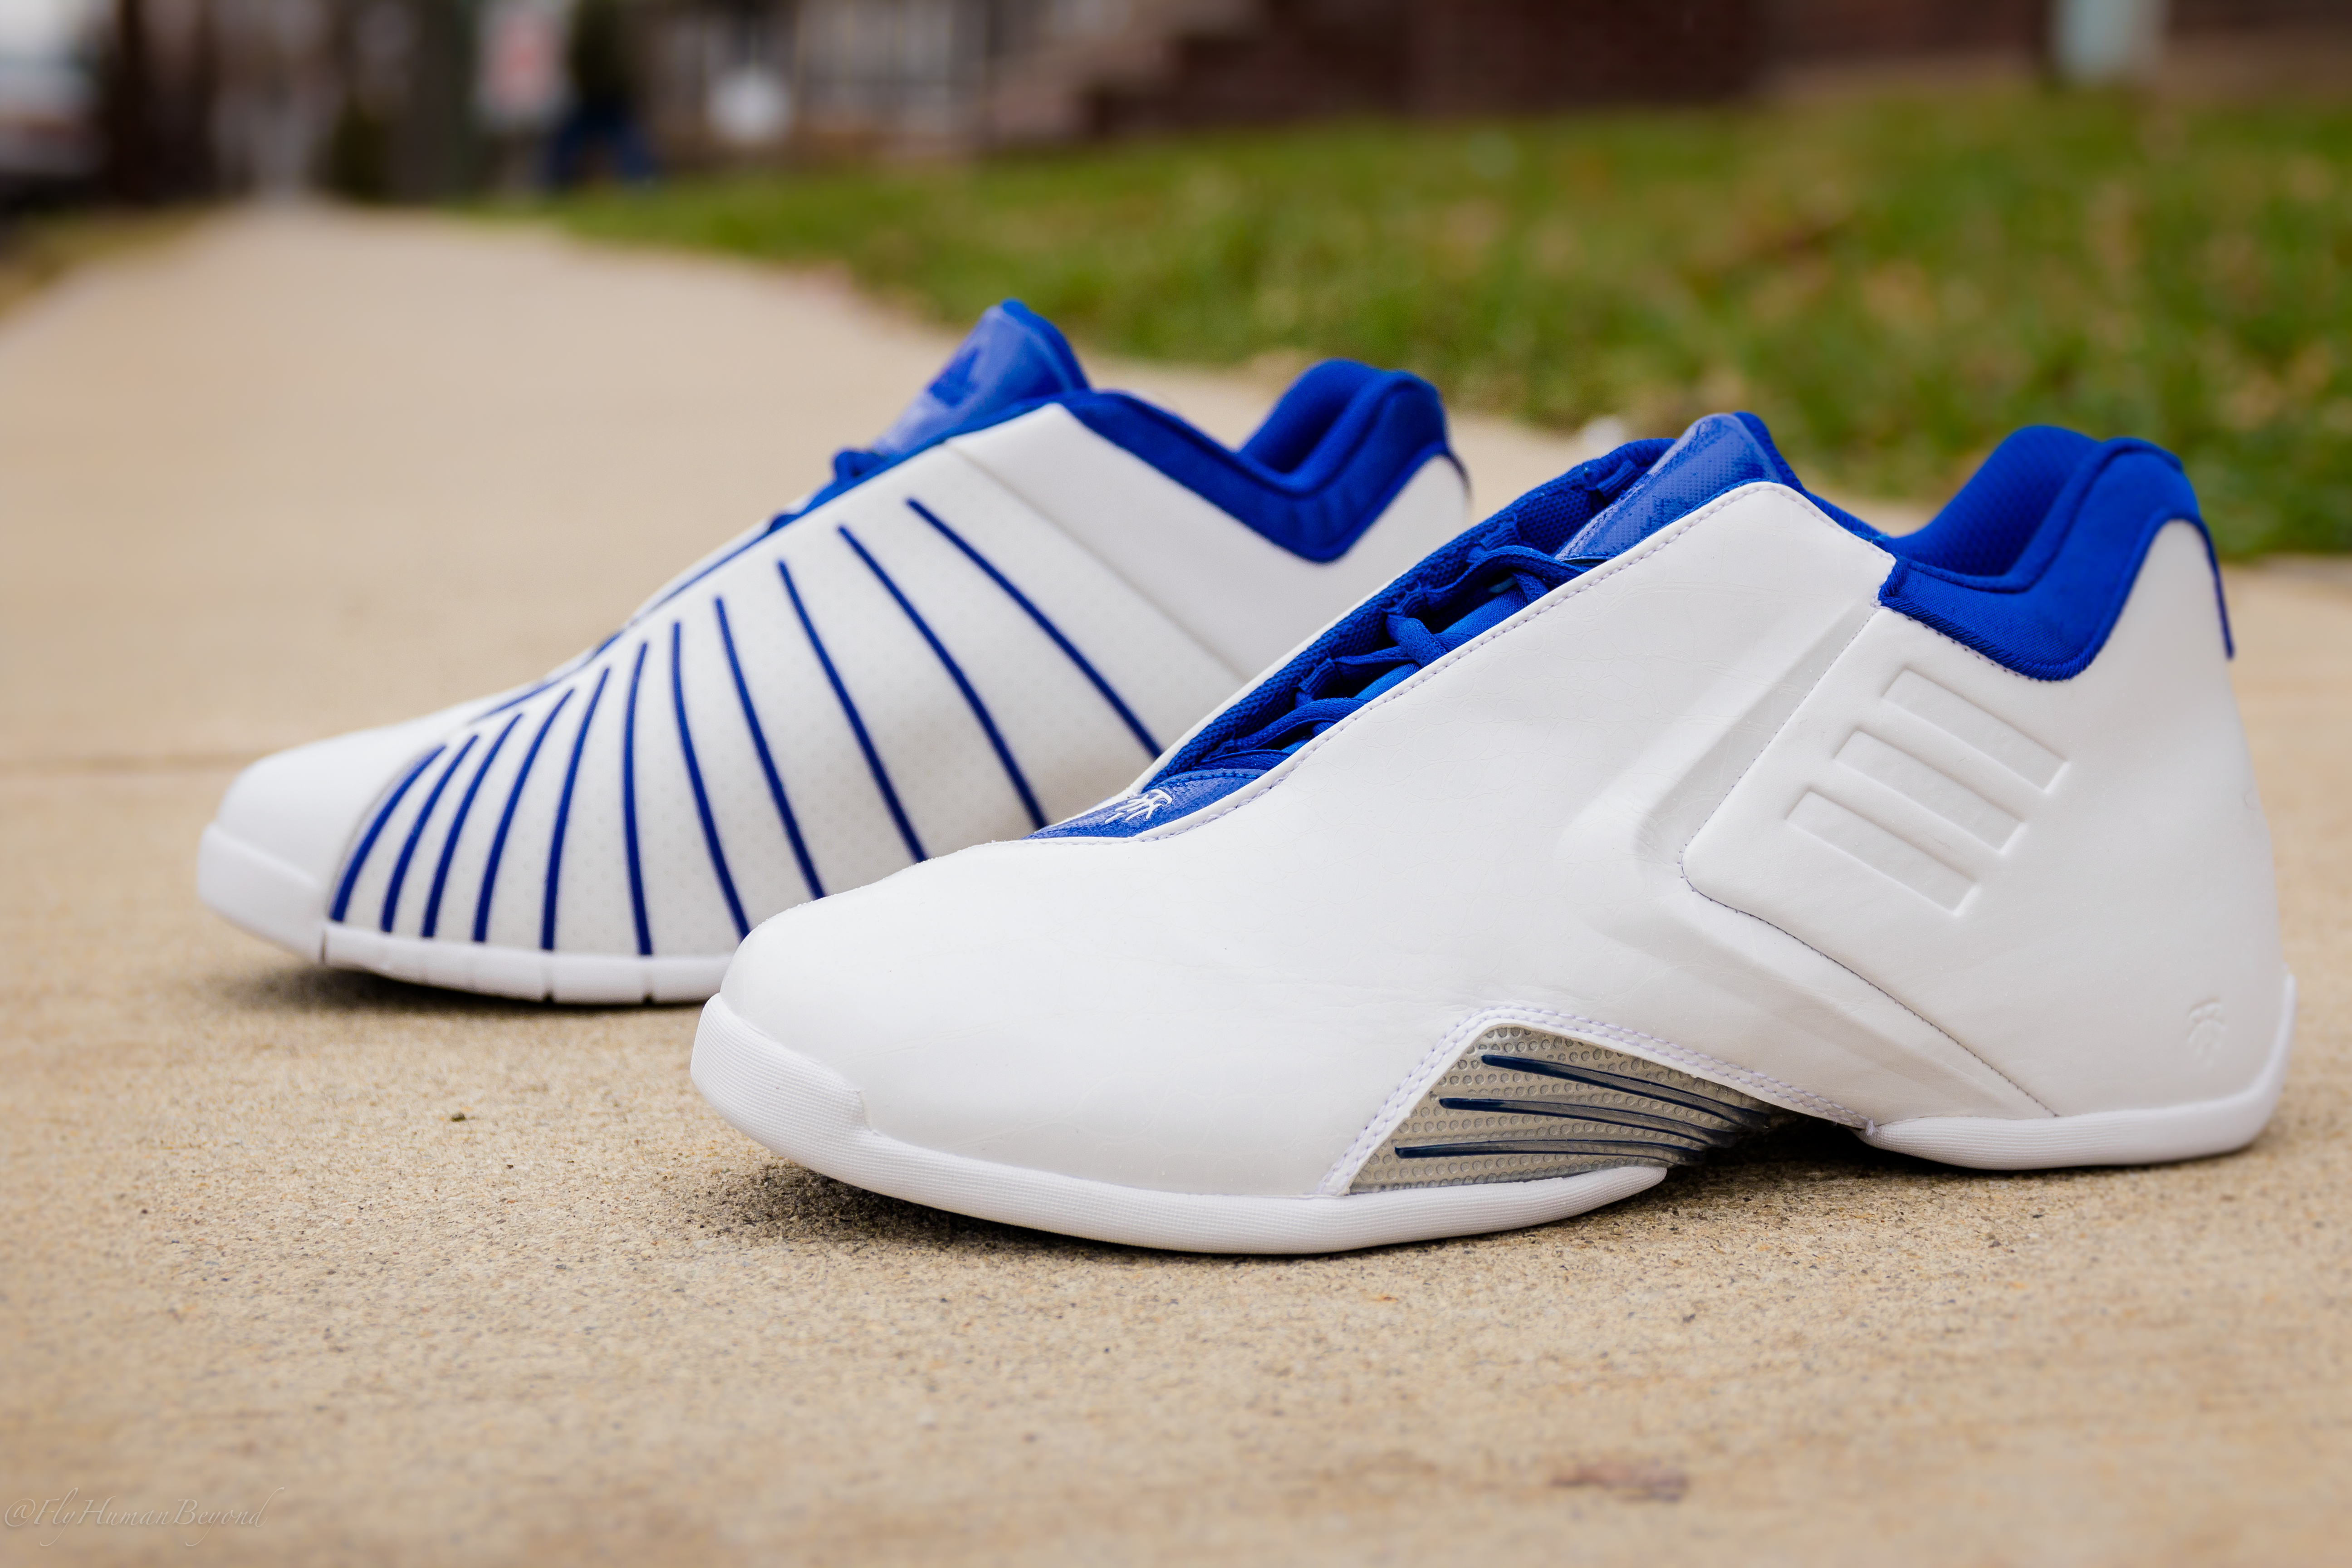 Buy Basketball Adidas shoes 2000 picture trends